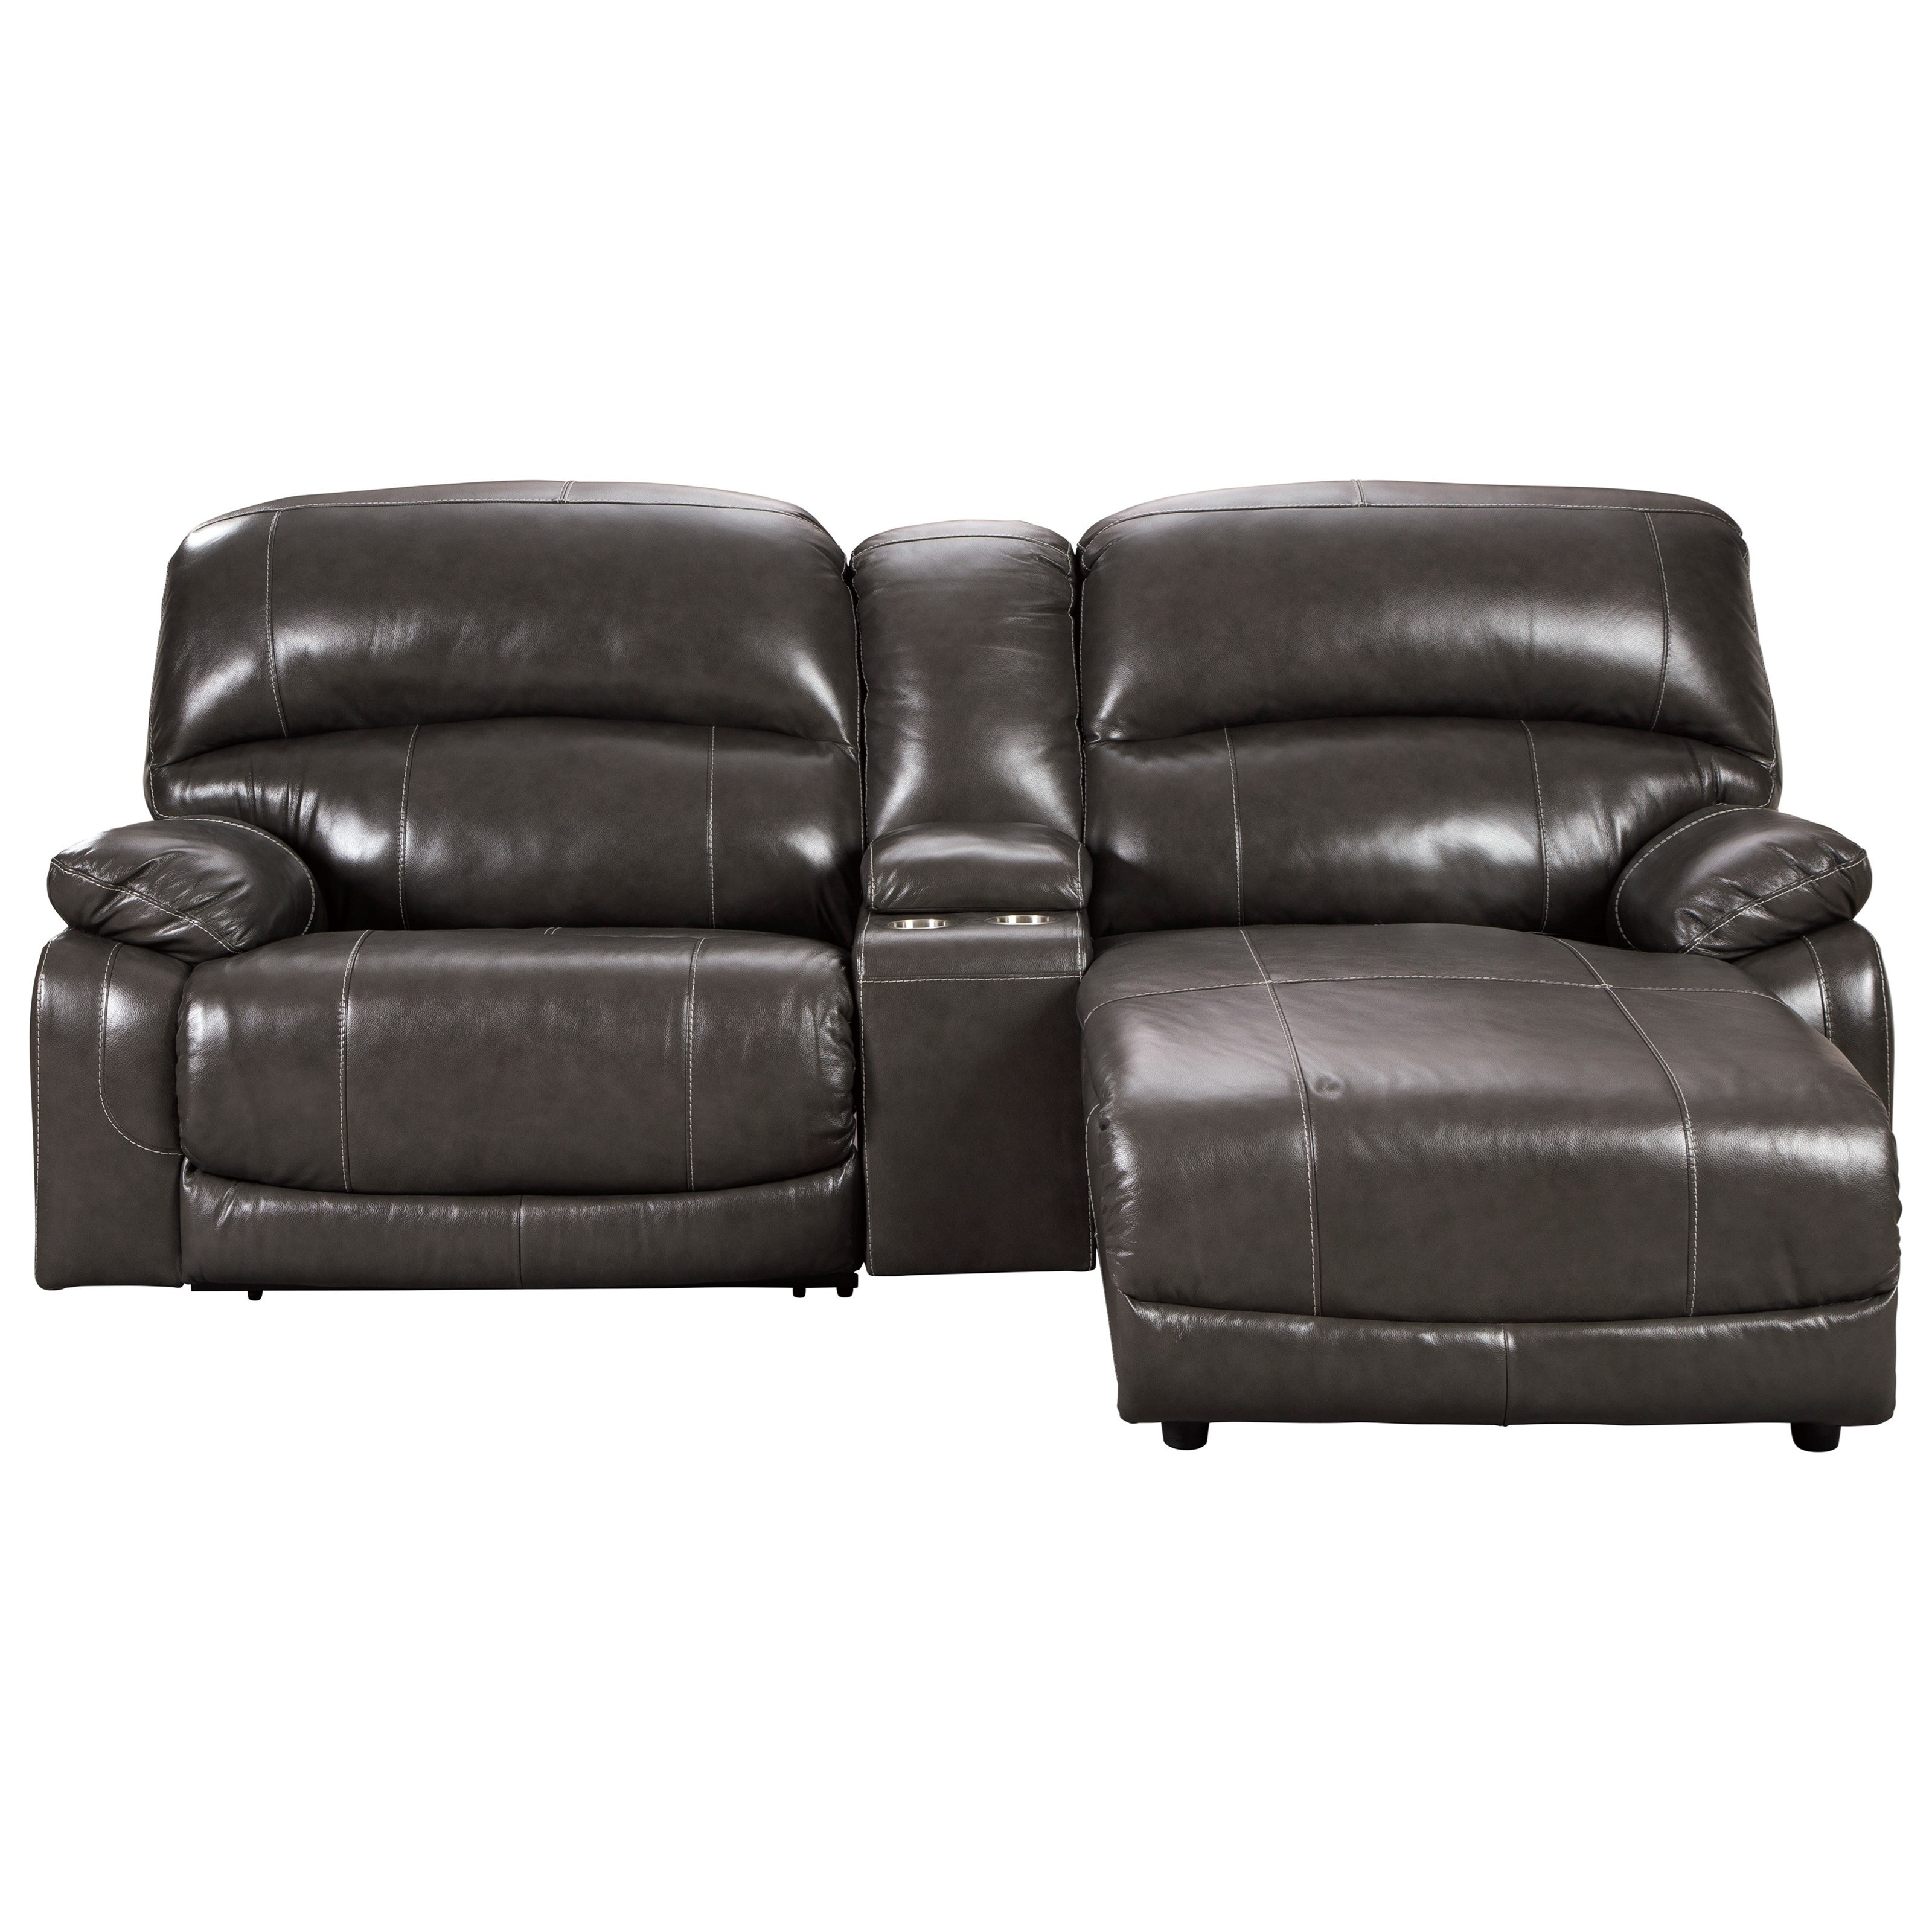 Hallstrung 3-Piece Recl Sectional w/ Chaise & Console by Ashley (Signature Design) at Johnny Janosik